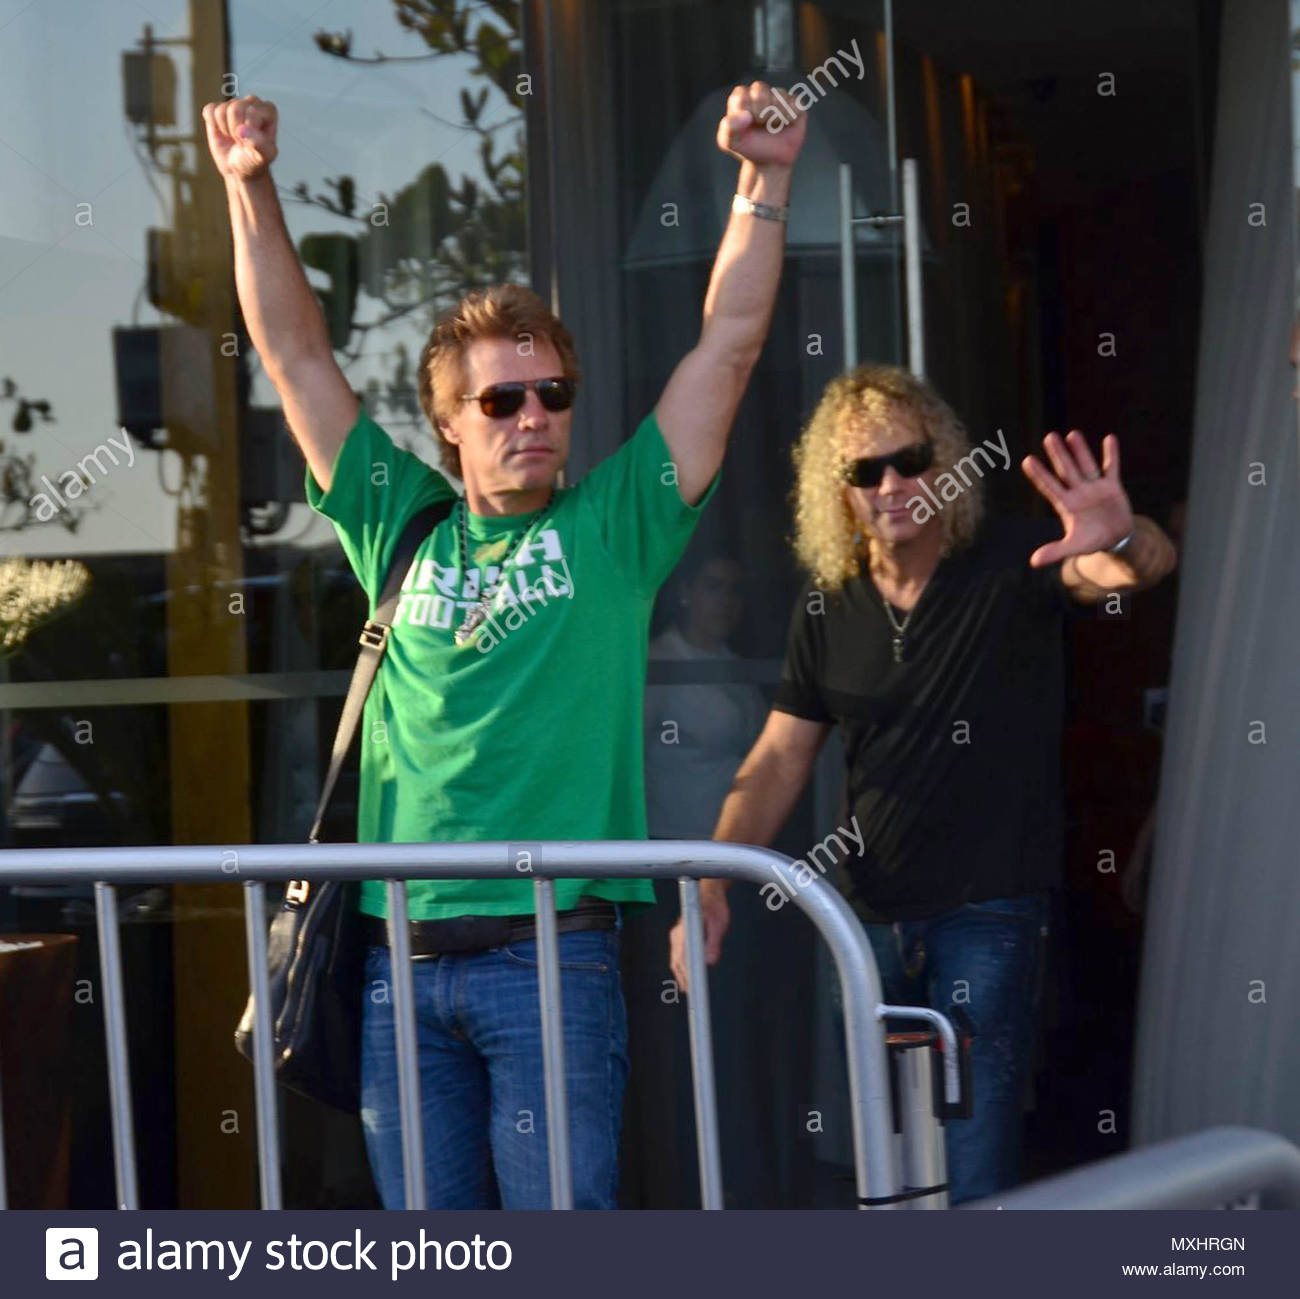 Jon bon jovi and david bryan the rock star raised his arms to greet the rock star raised his arms to greet fans outside his rio de janeiro hotel shortly after being seen on the phone at his balcony m4hsunfo